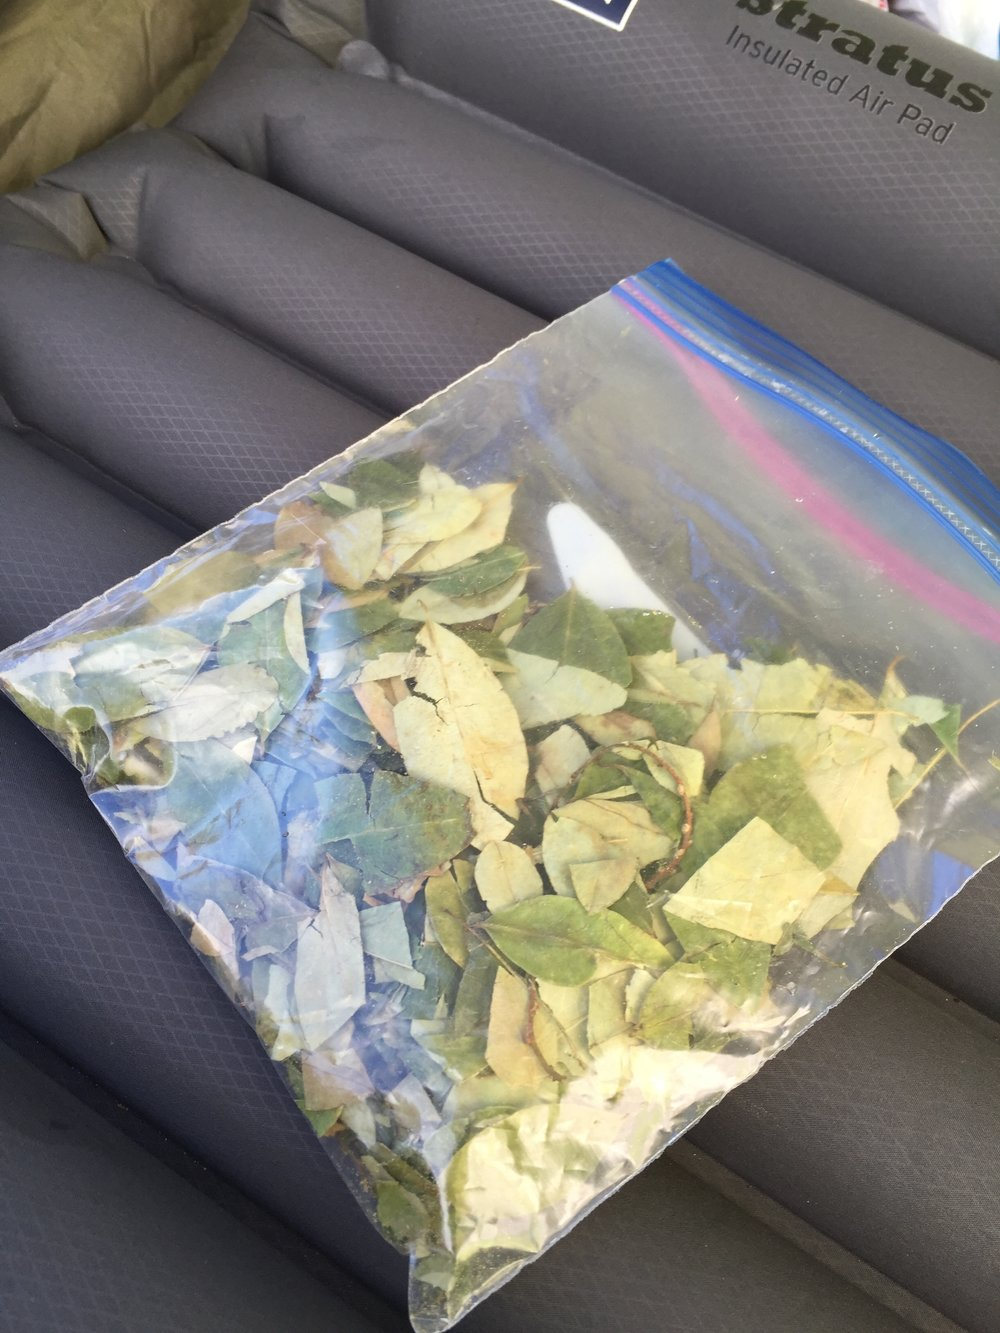 Our little supply of coca leaves. We brought some just in case. It's well known to combat the effects of altitude, provides a mild jolt of energy, and helps digestion. I ended up only chewing it once.